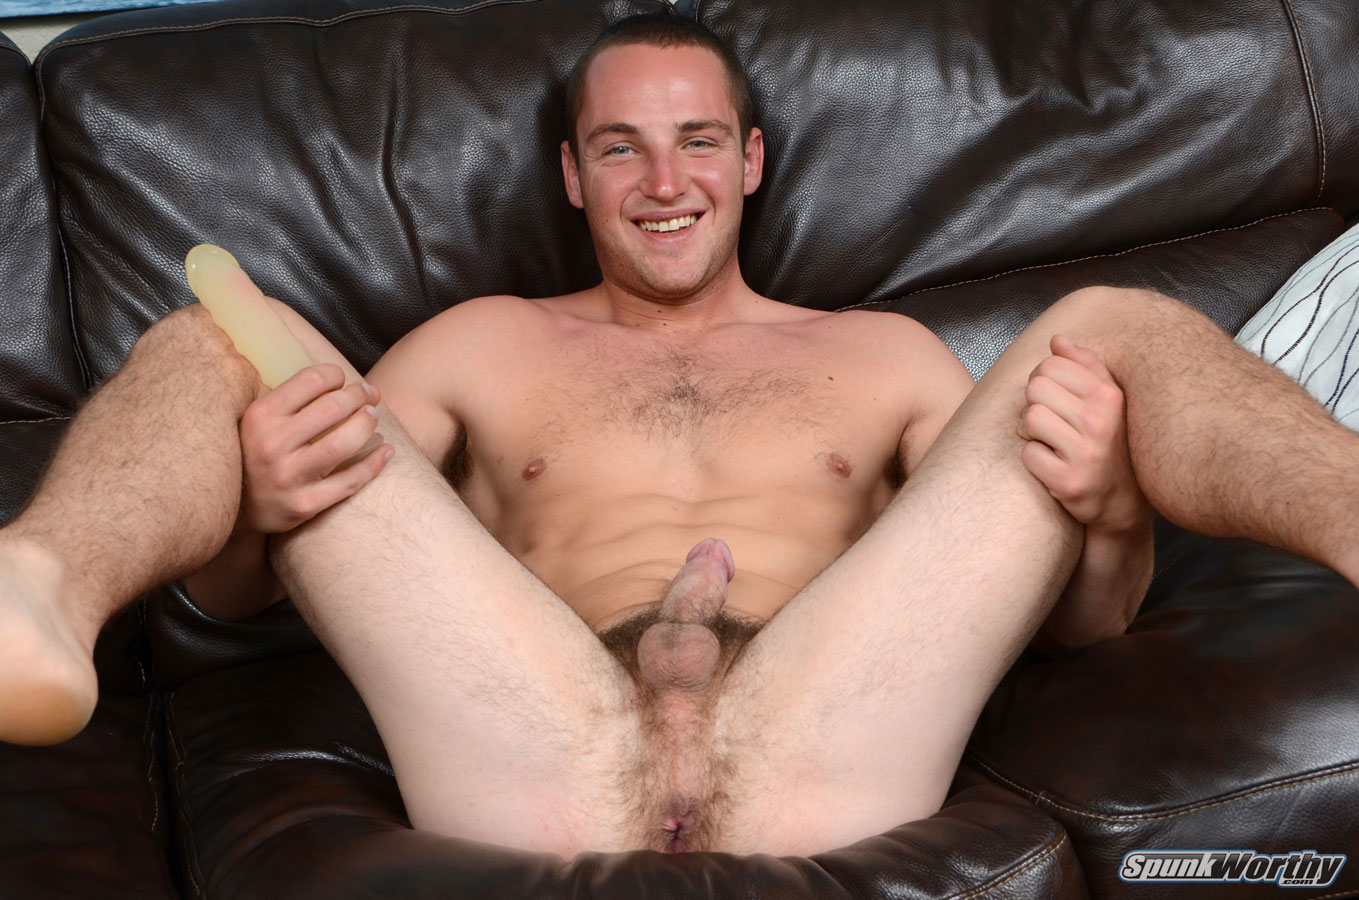 SpunkWorthy Dean Straight Marine Uses A Dildo On Hairy Ass Amateur Gay Porn 04 Ripped Marine Fucks His Straight Hairy Ass With A Dildo